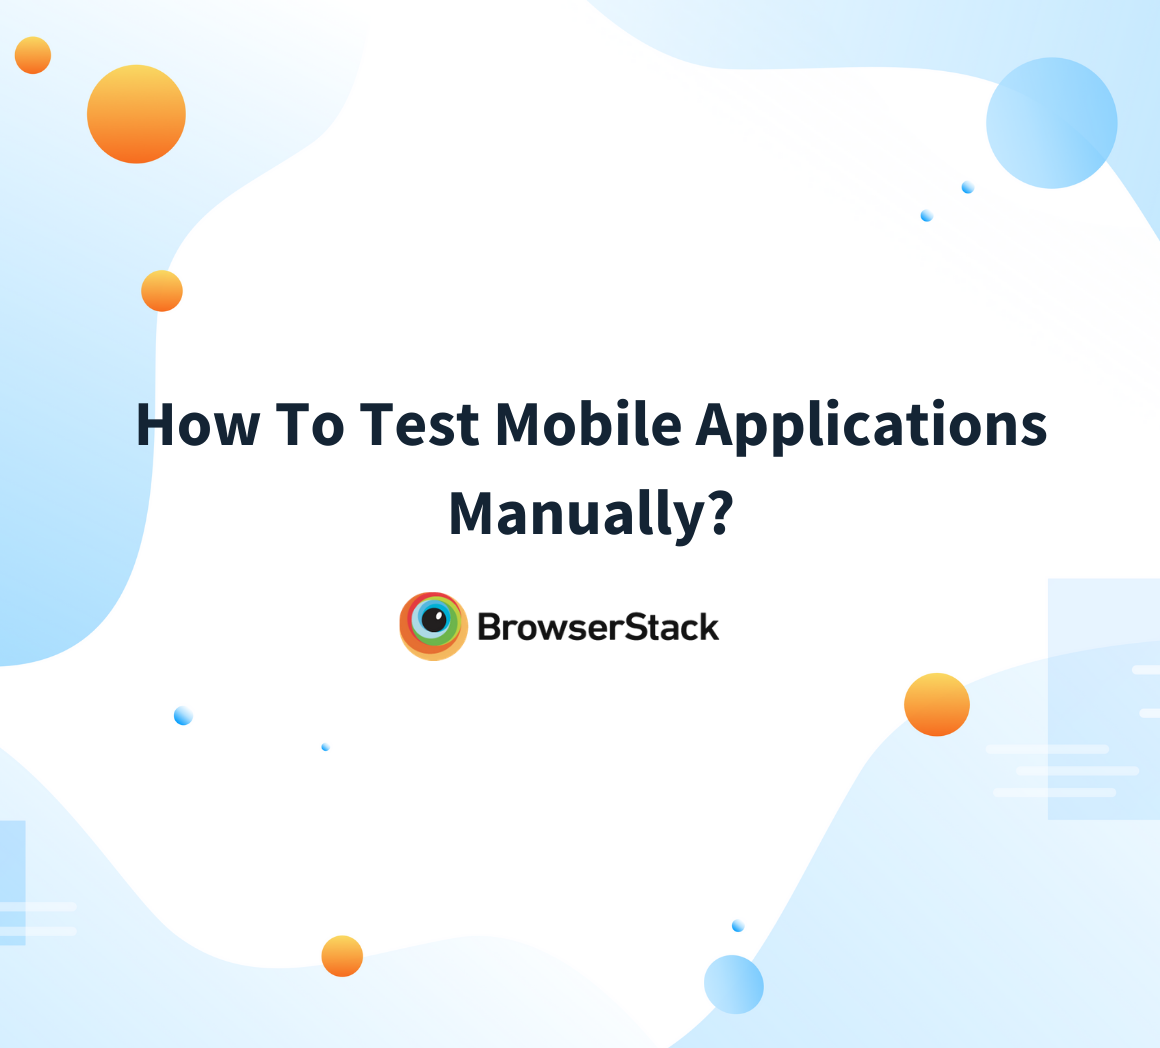 How to Test Mobile Applications Manually